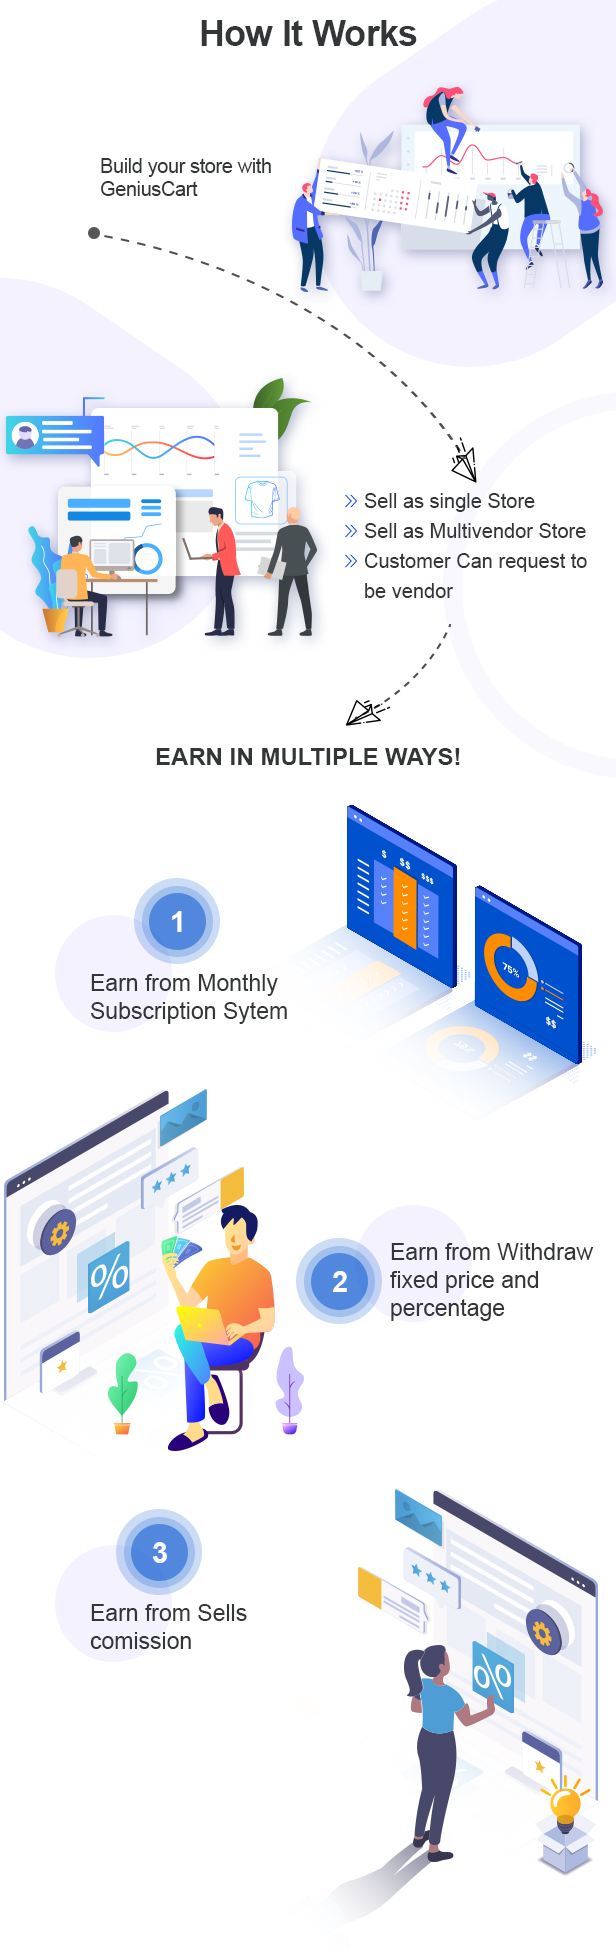 KingCommerce - All in One Single and Multivendor Eommerce Business Management System - 3